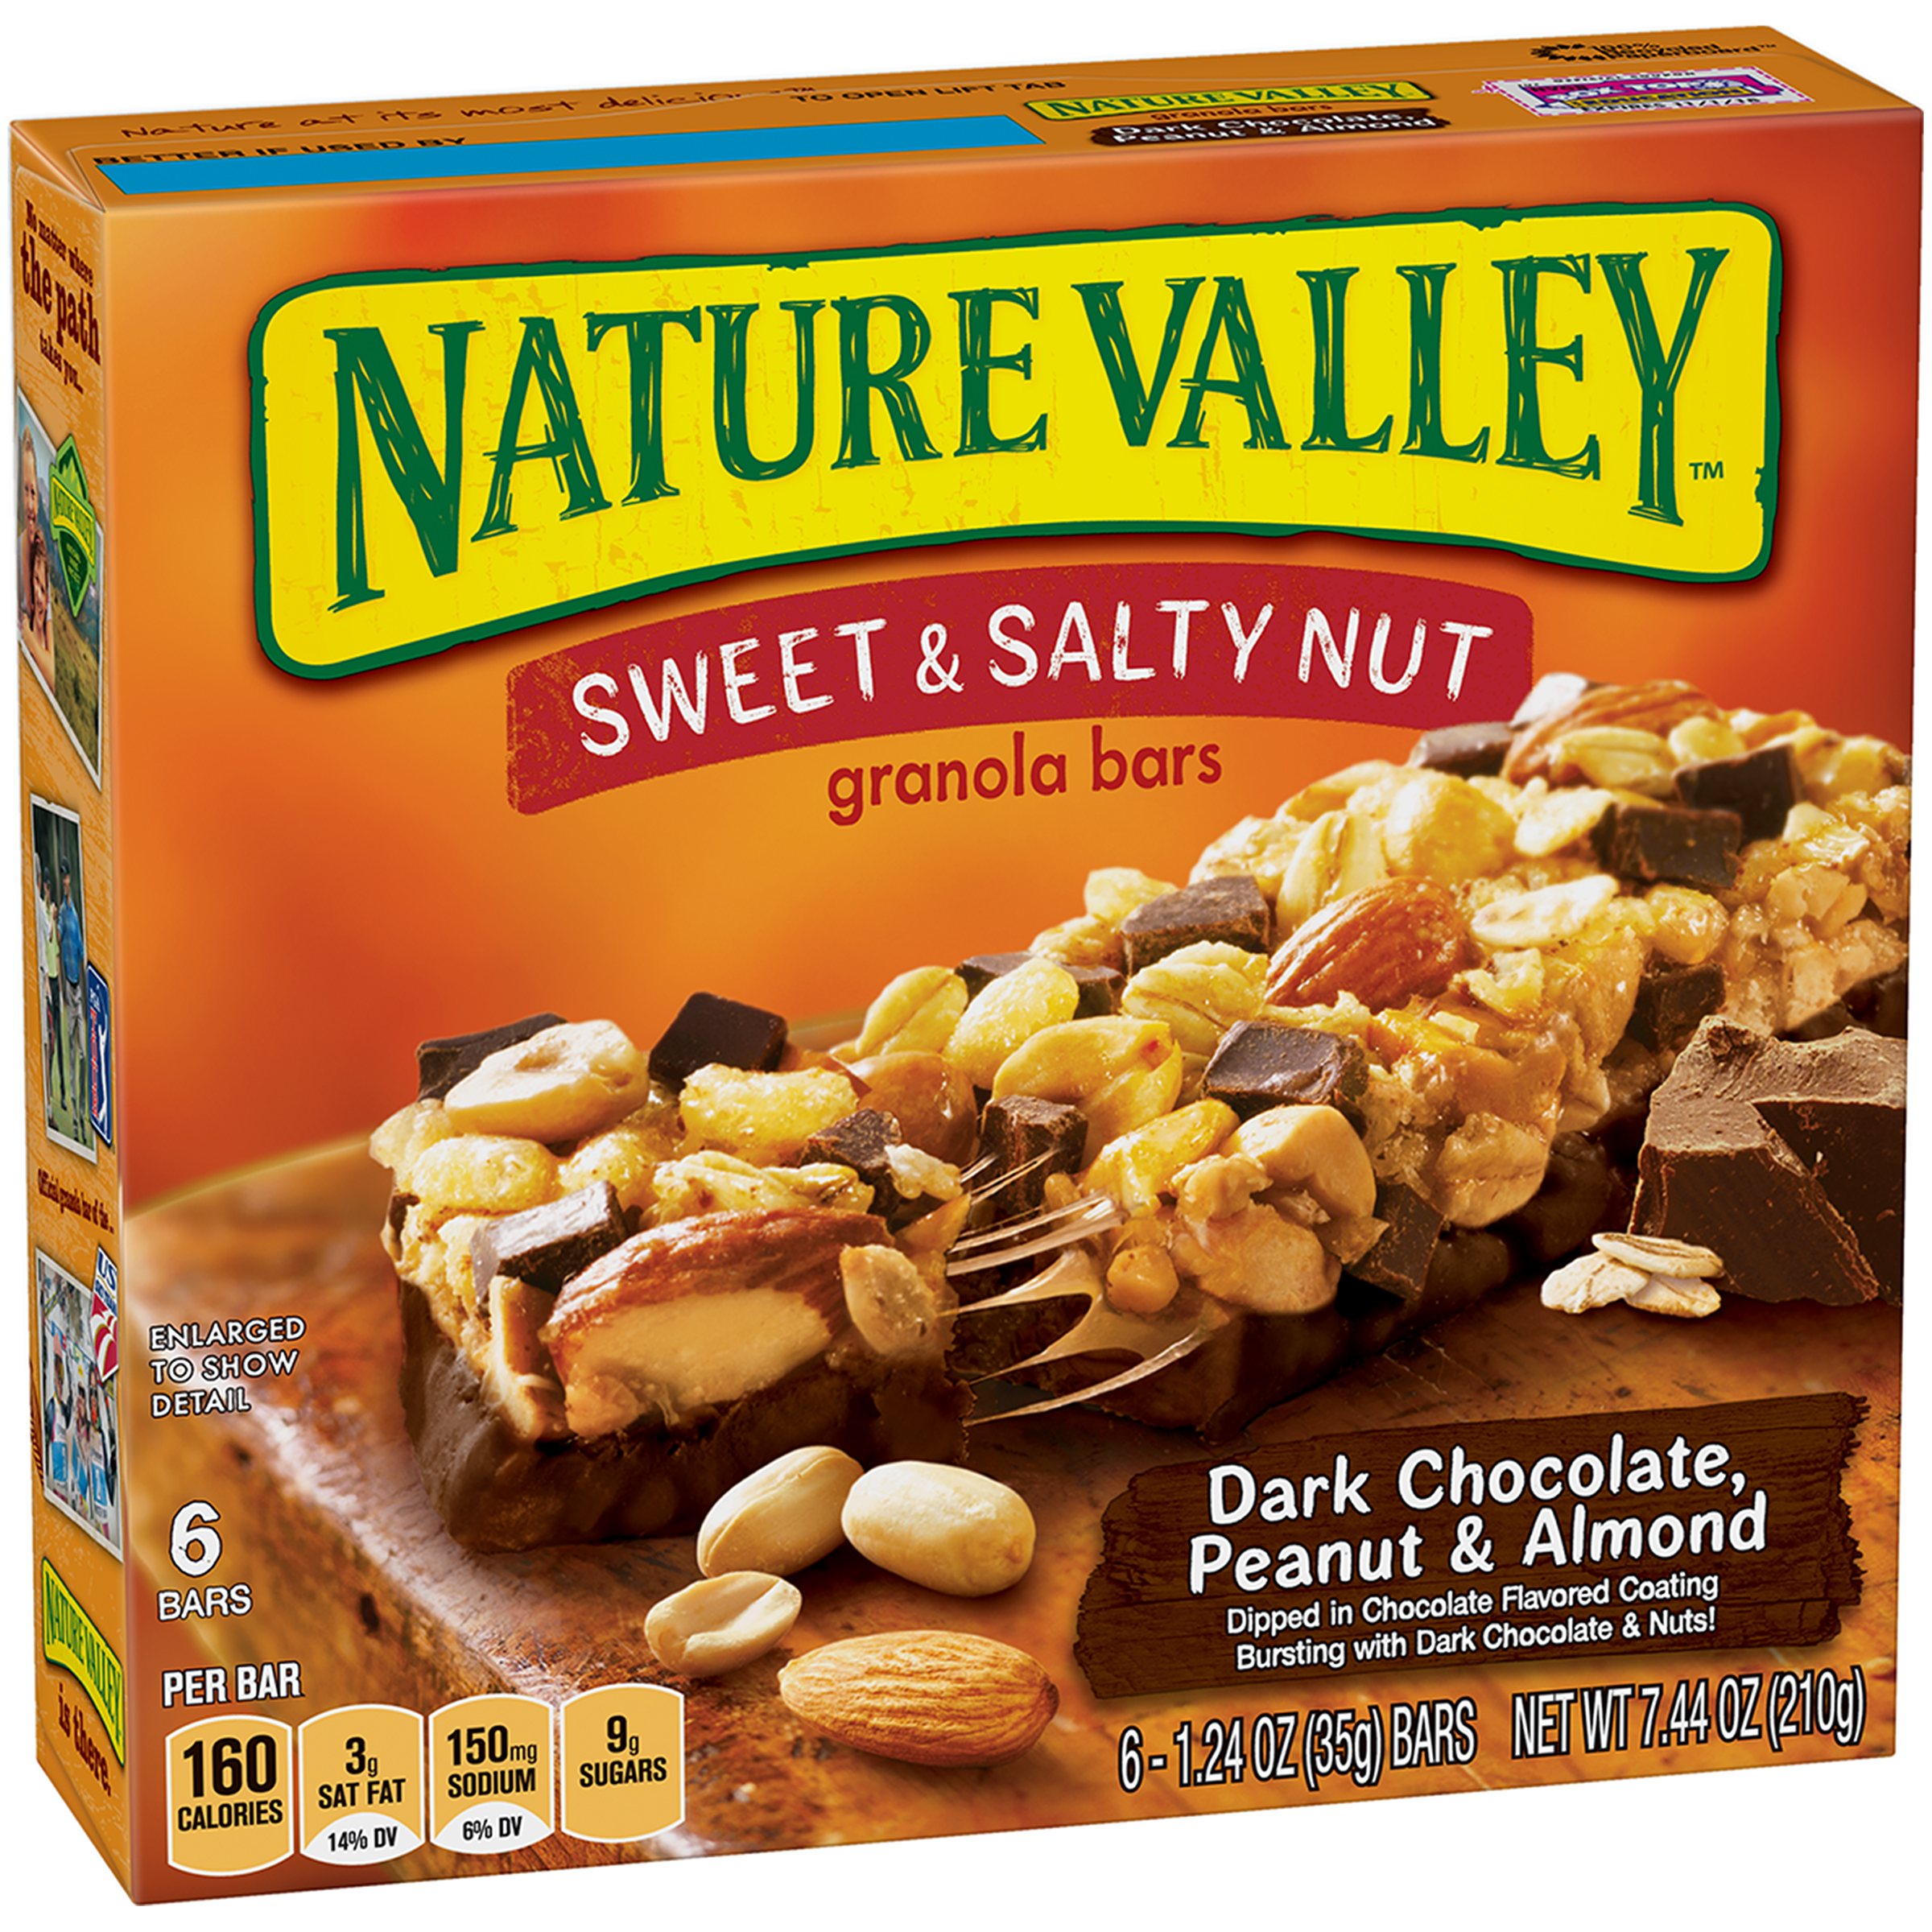 Nature Valley��� Dark Chocolate, Peanut & Almond Sweet & Salty Nut Granola Bars 6 ct Box